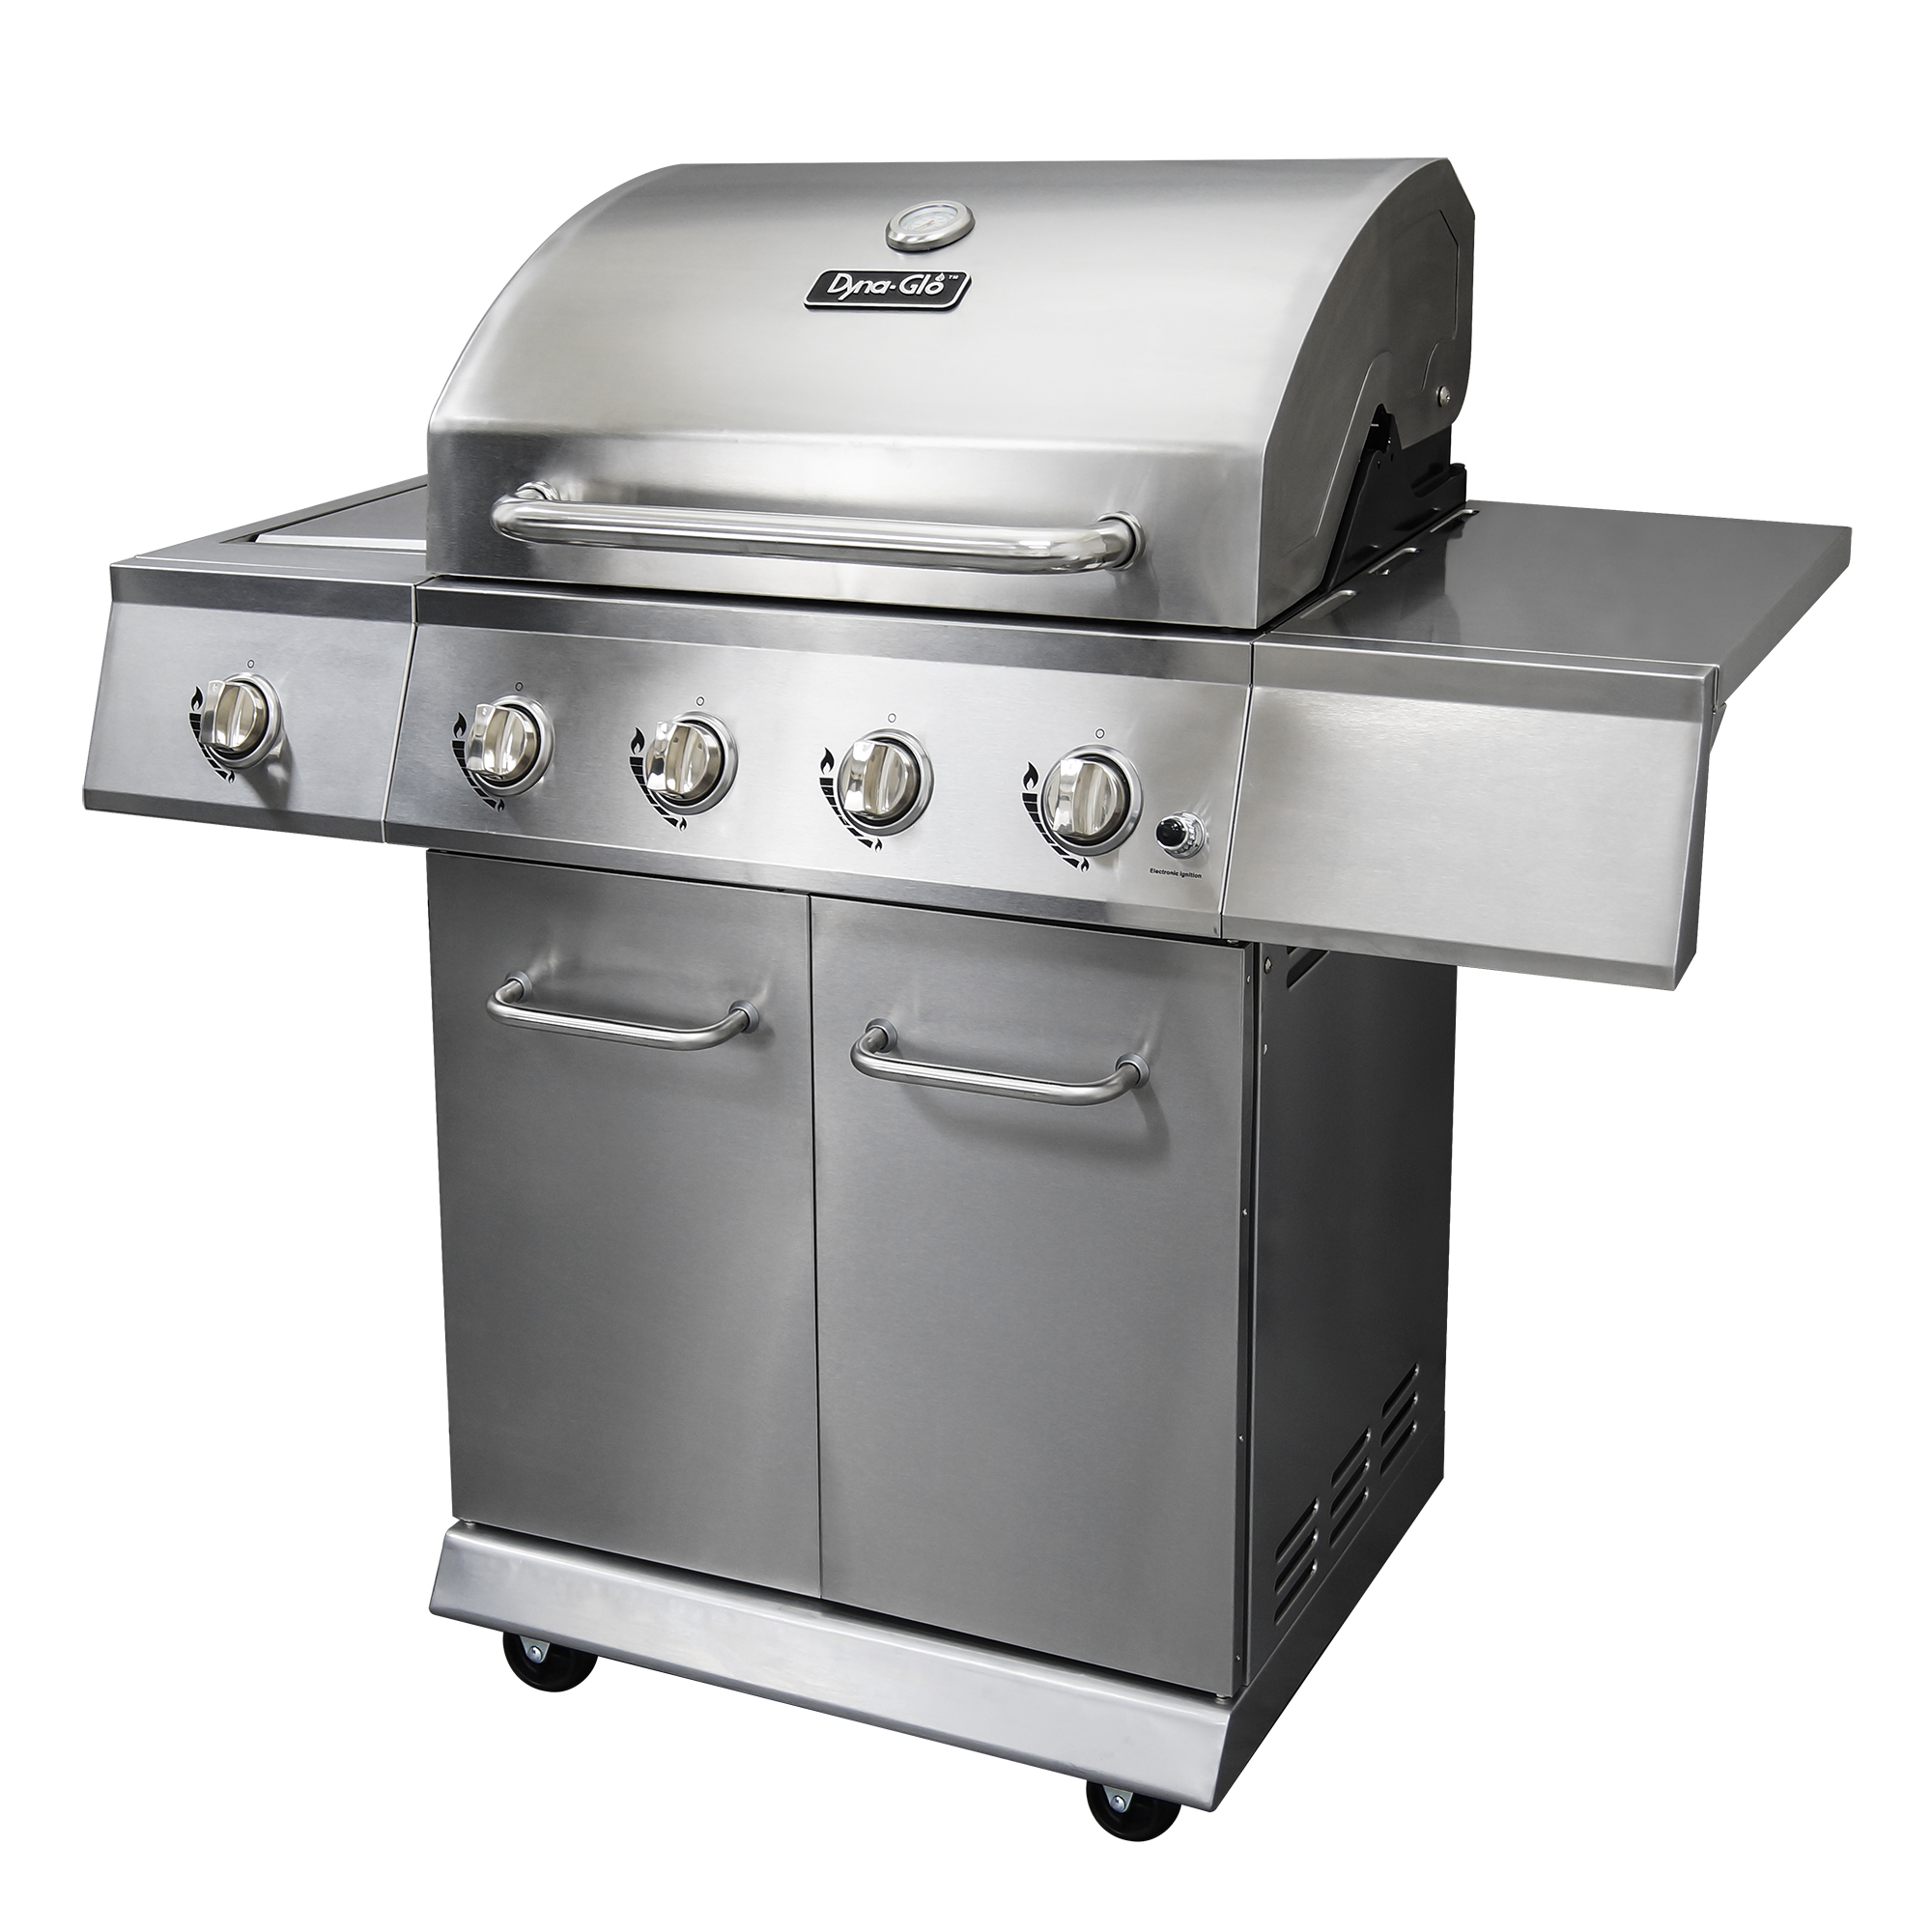 Dyna-Glo DGE486SSP-D 4 Burner Stainless Gas Grill by GHP Group, Inc.